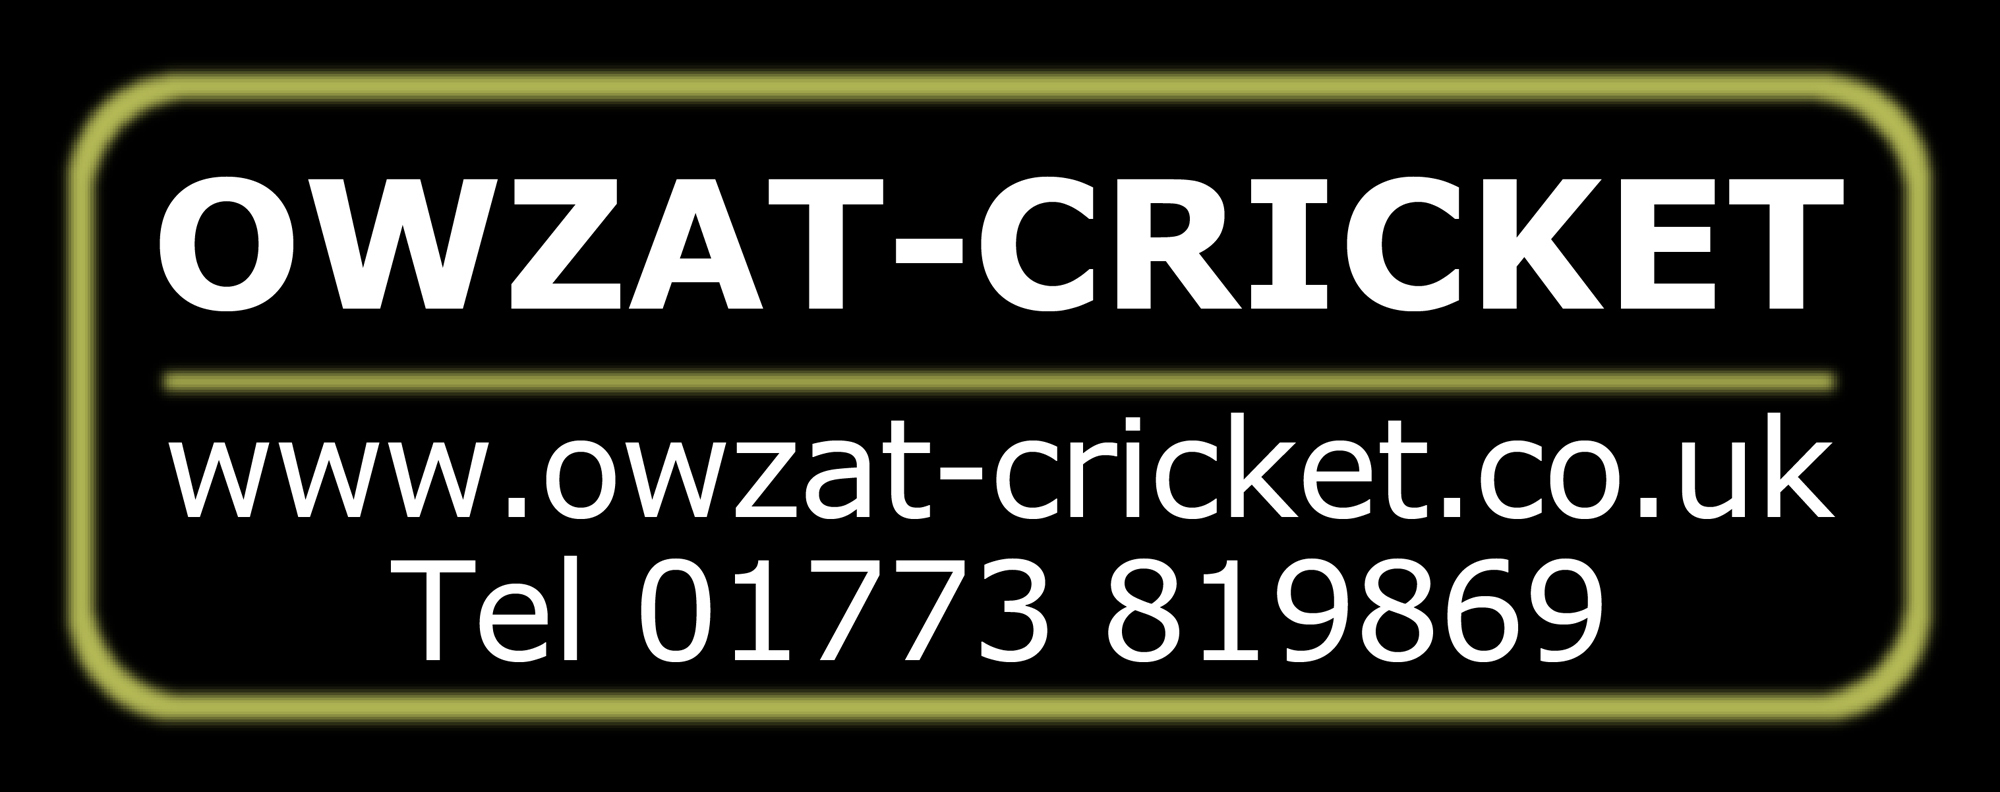 Owzat-Cricket